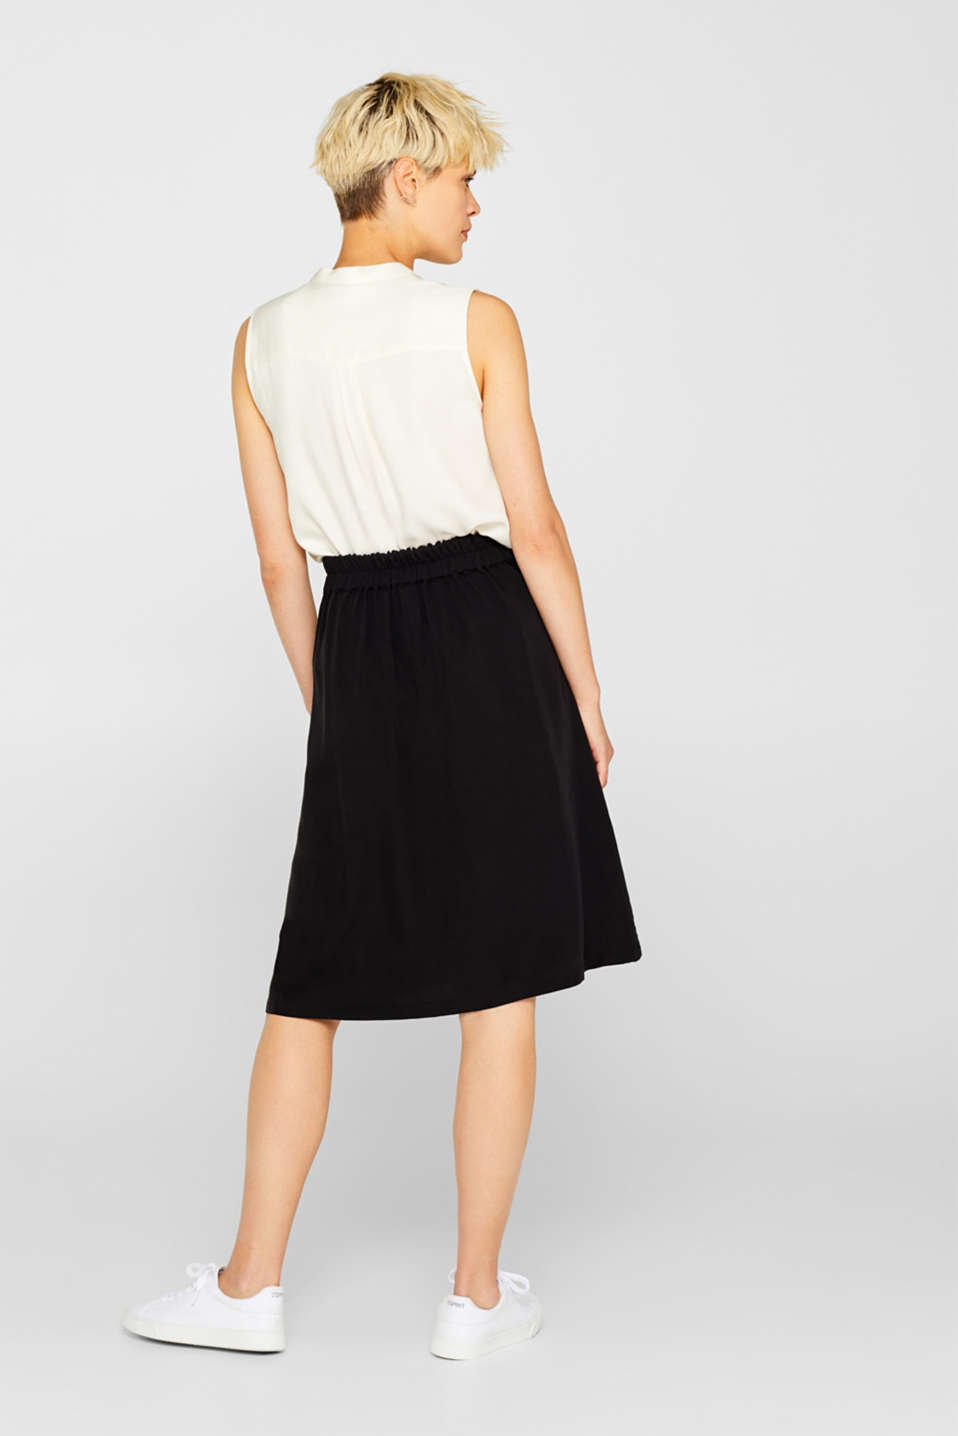 A-line skirt with pockets, 100% lyocell, BLACK, detail image number 3